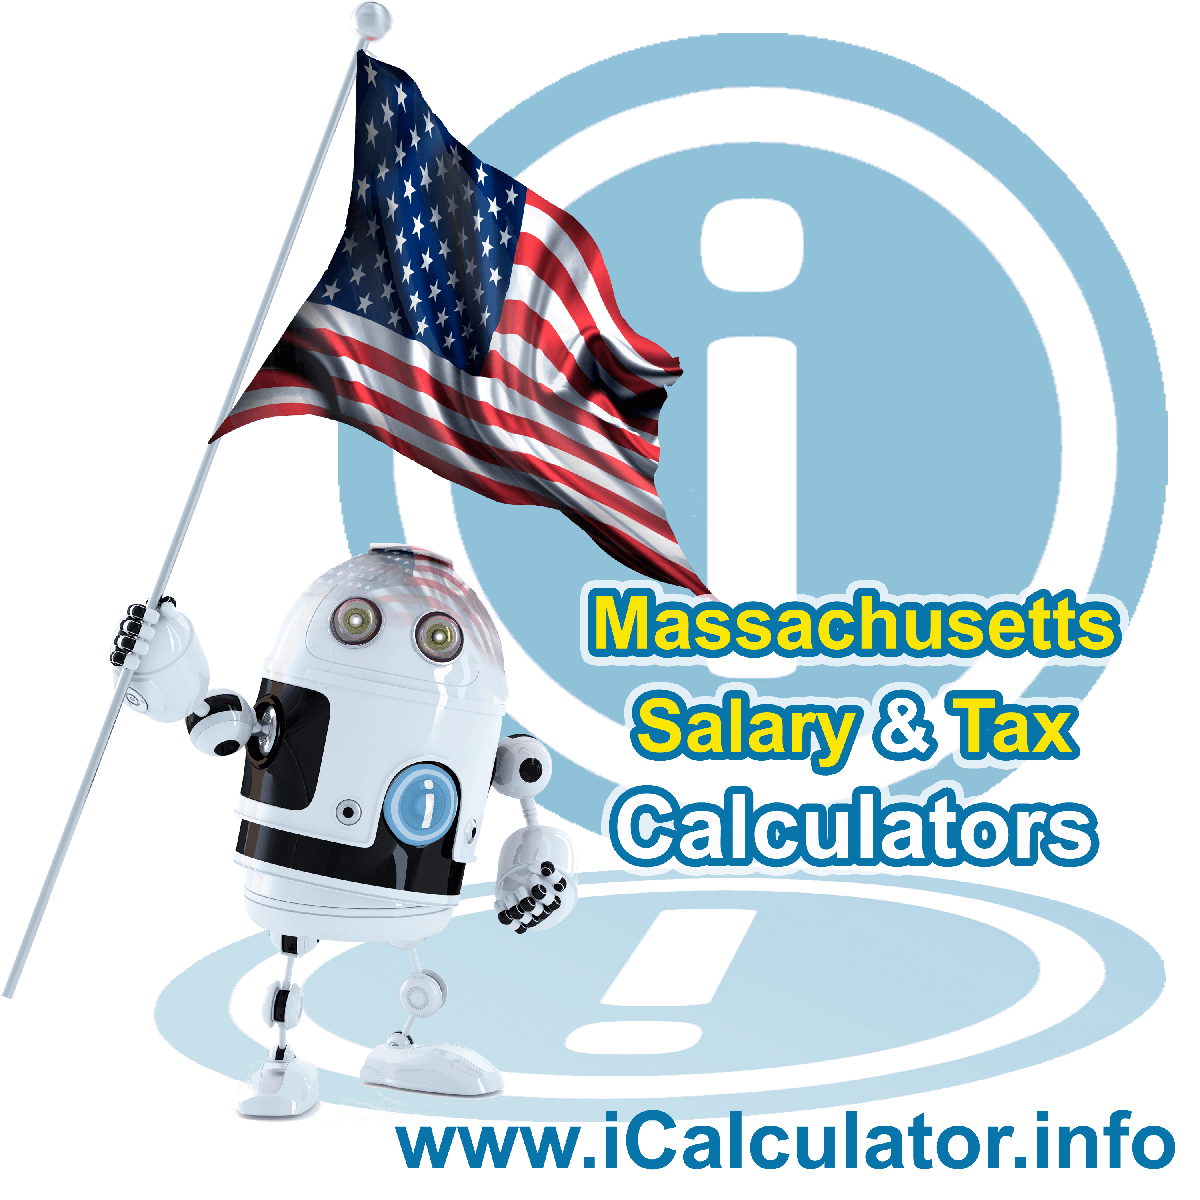 Massachusetts Salary Calculator 2019 | iCalculator | The Massachusetts Salary Calculator allows you to quickly calculate your salary after tax including Massachusetts State Tax, Federal State Tax, Medicare Deductions, Social Security, Capital Gains and other income tax and salary deductions complete with supporting Massachusetts state tax tables